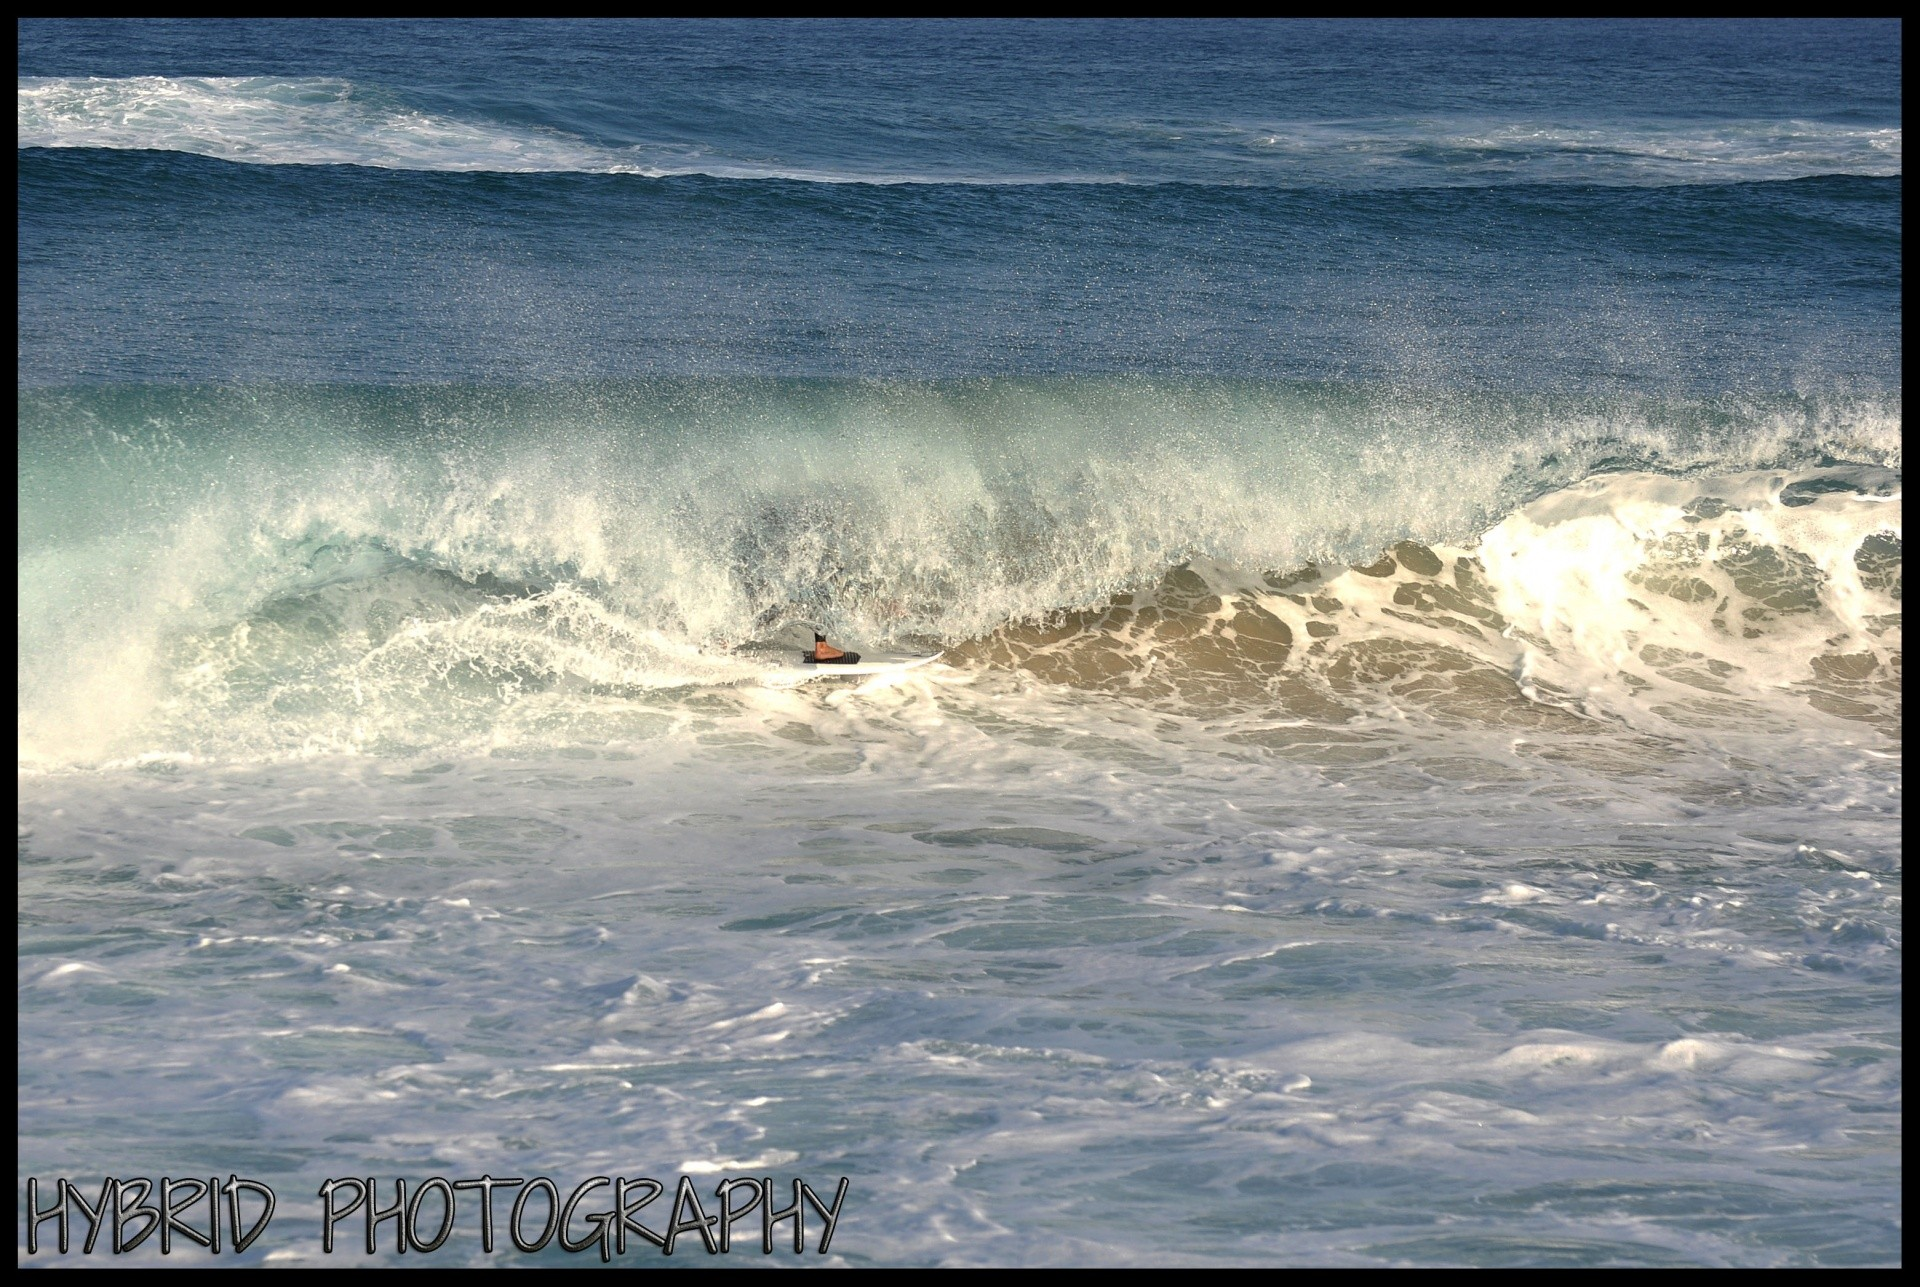 HybridPhotography's photo of Palm Beach